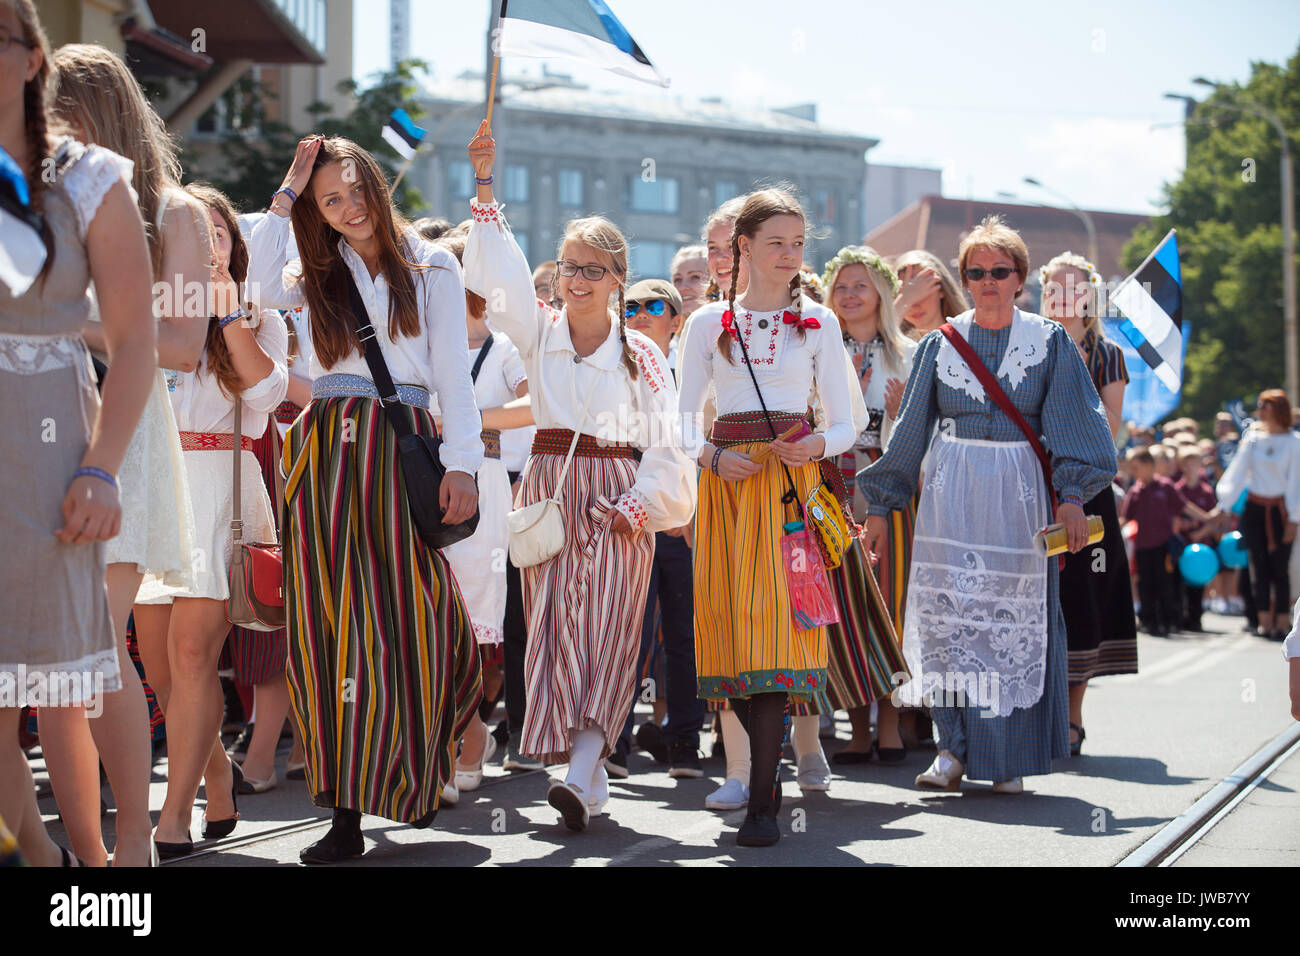 TALLINN, ESTONIA - 04 JUL 2014: People in Estonian costumes going at ceremonial procession of Estonian song and - Stock Image